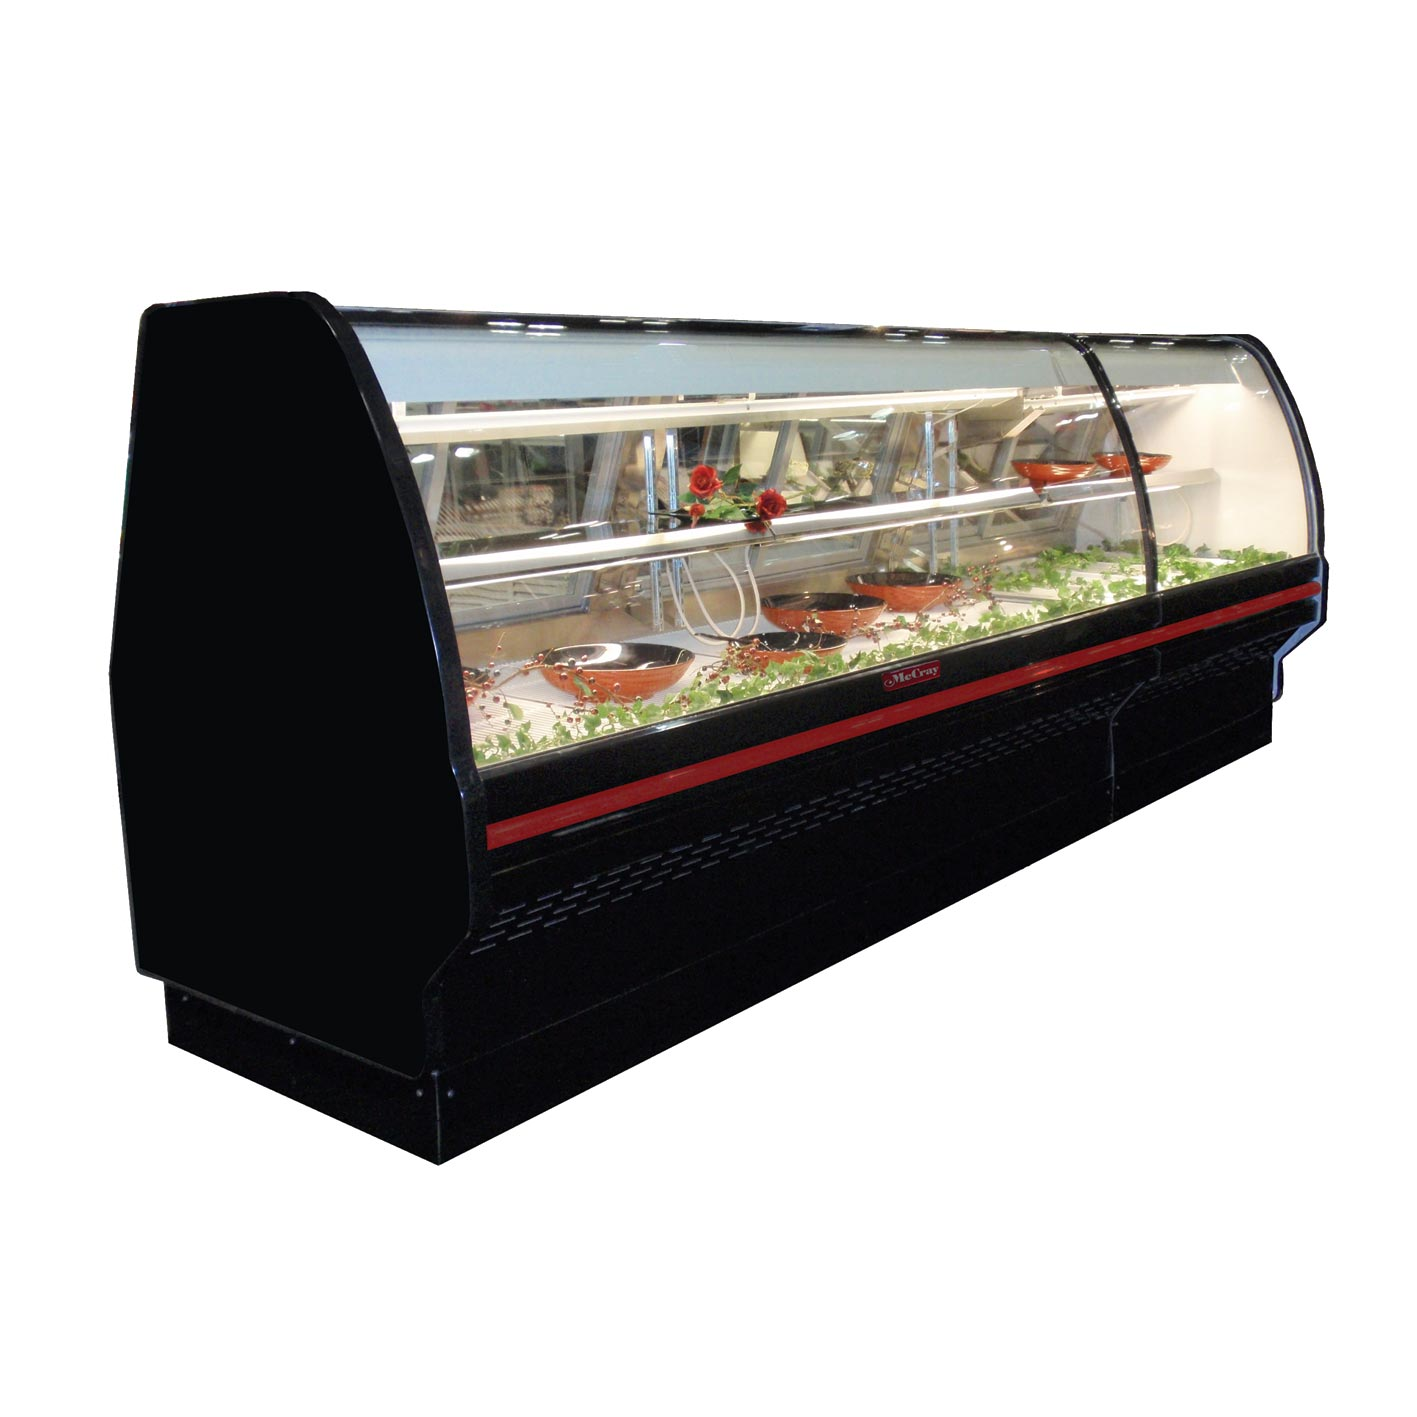 Howard-McCray SC-CDS40E-4C-BE-LED display case, refrigerated deli